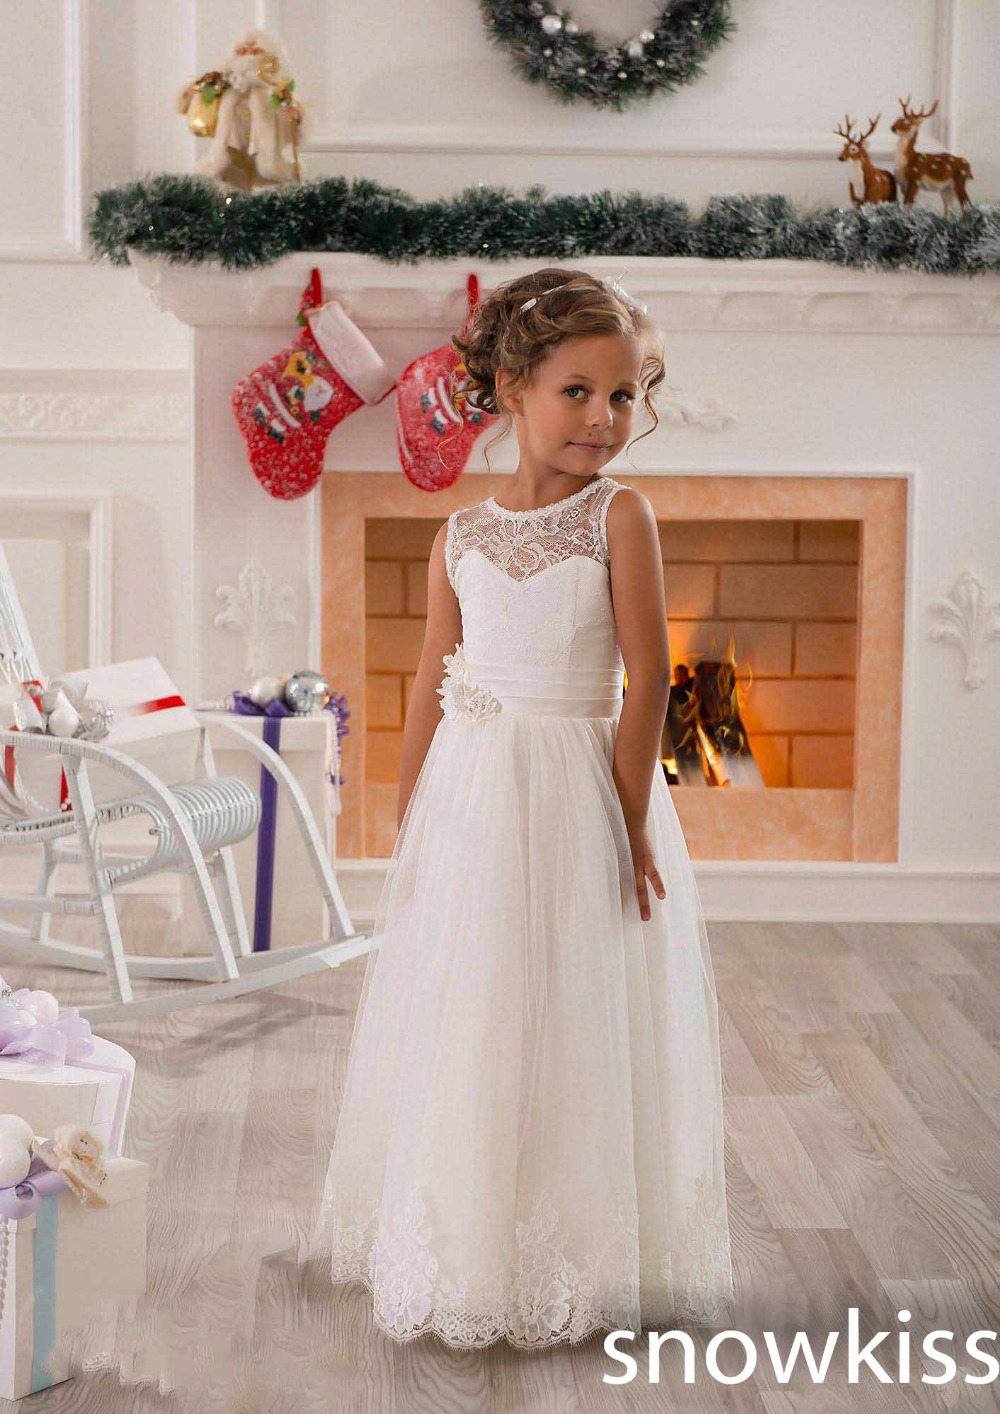 New arrival white/ivory sheer neck lace tulle A-line flower girl dress beautiful kids first communion gowns for wedding occasion new white ivory nice spaghetti straps sequined knee length a line flower girl dress beautiful square collar birthday party gowns